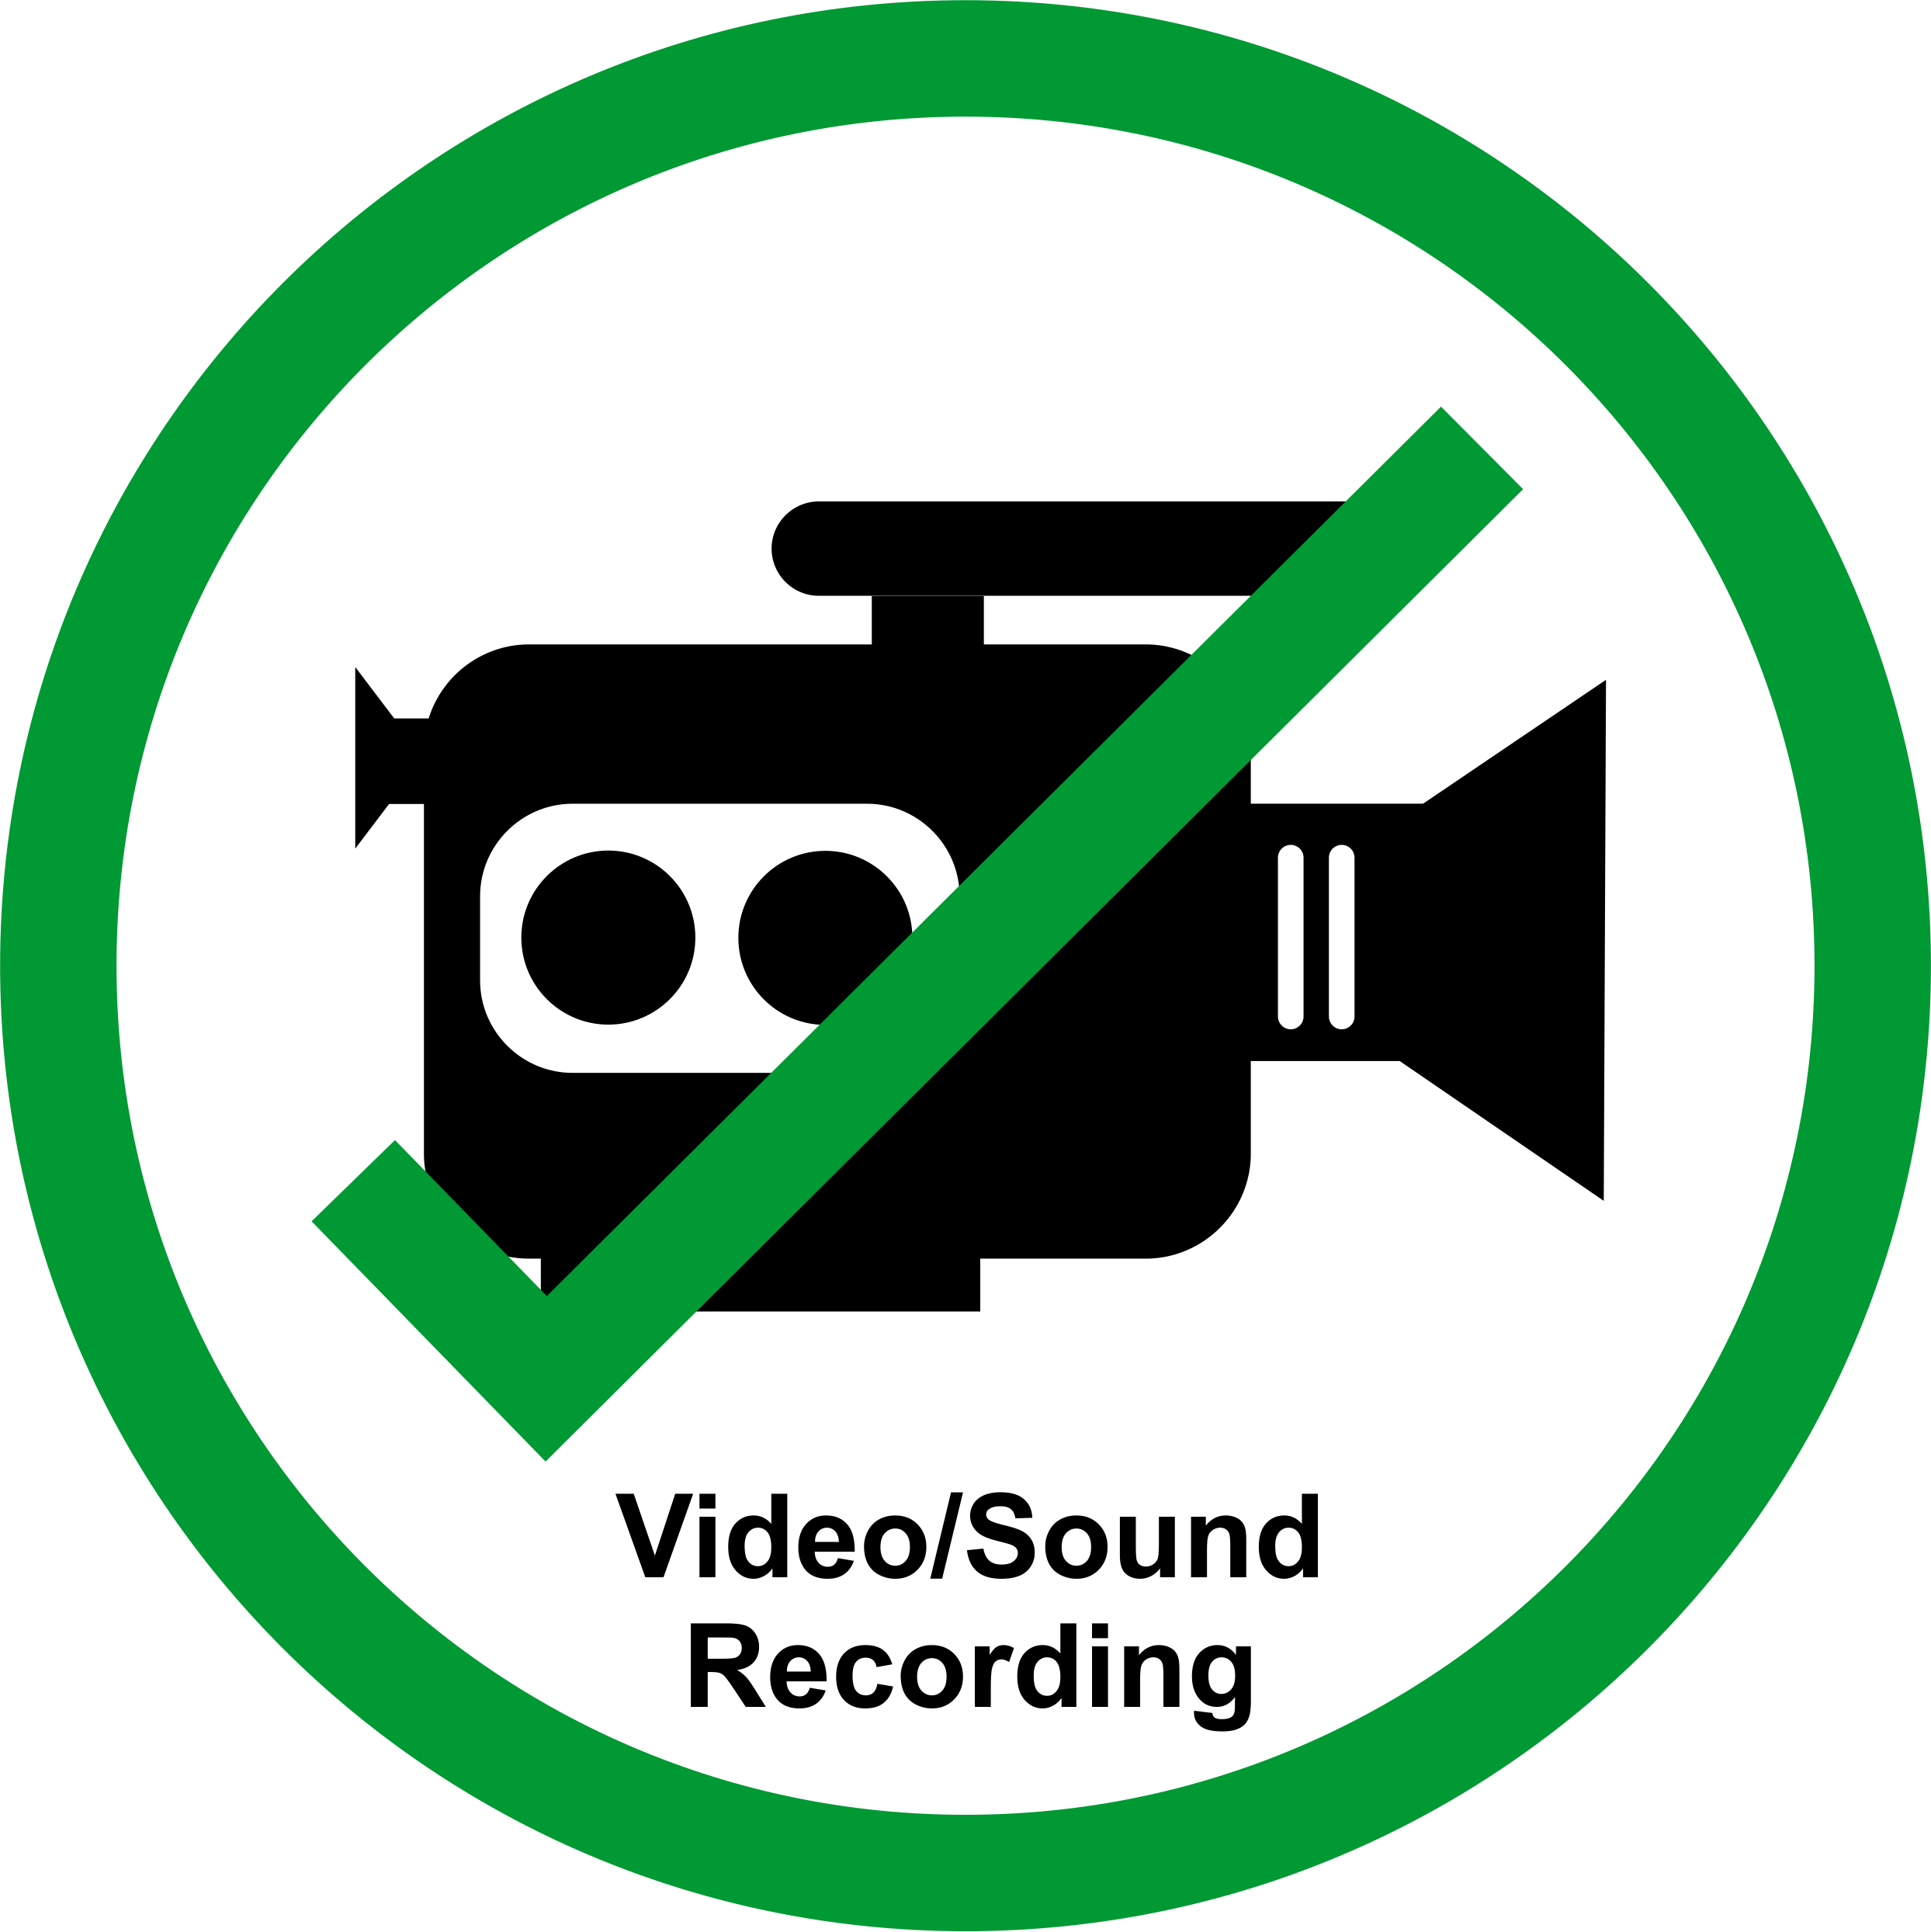 Permission sign for talks and posters at meetings to allow the work to be recorded/streamed.